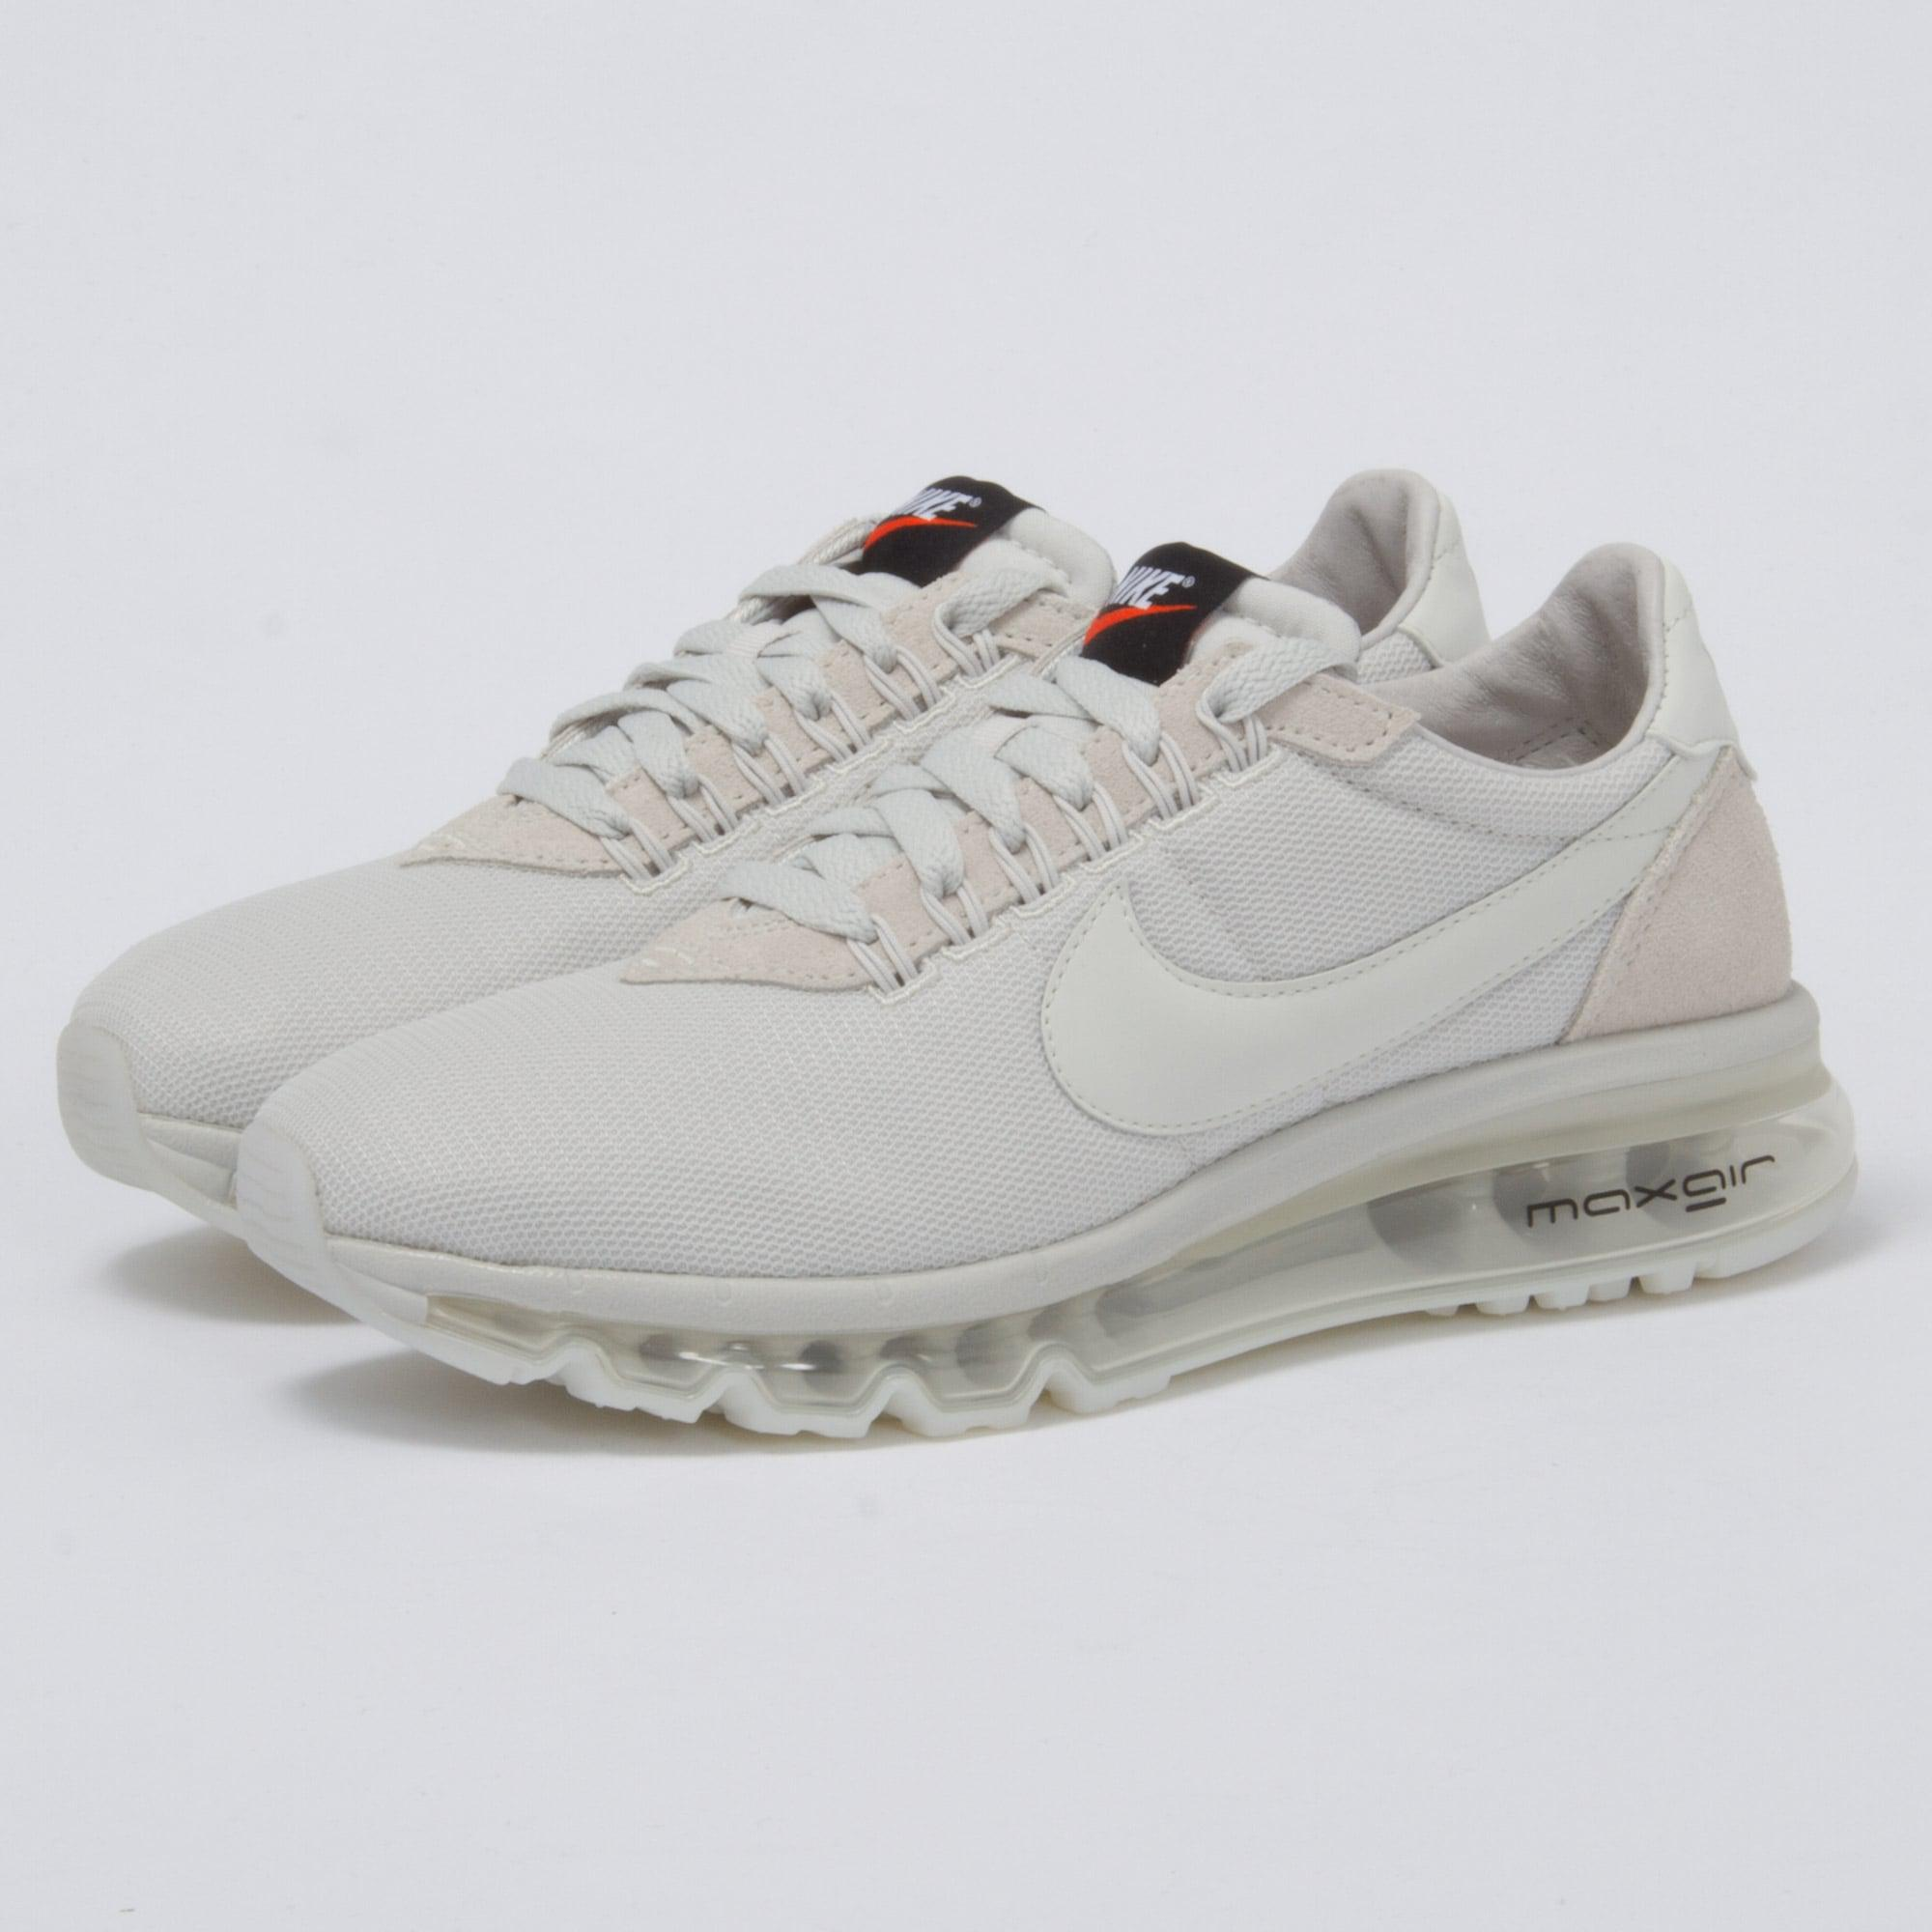 3e30a2952705 purchase gallery. previously sold at stuarts london womens nike air max  64fcc 2b590